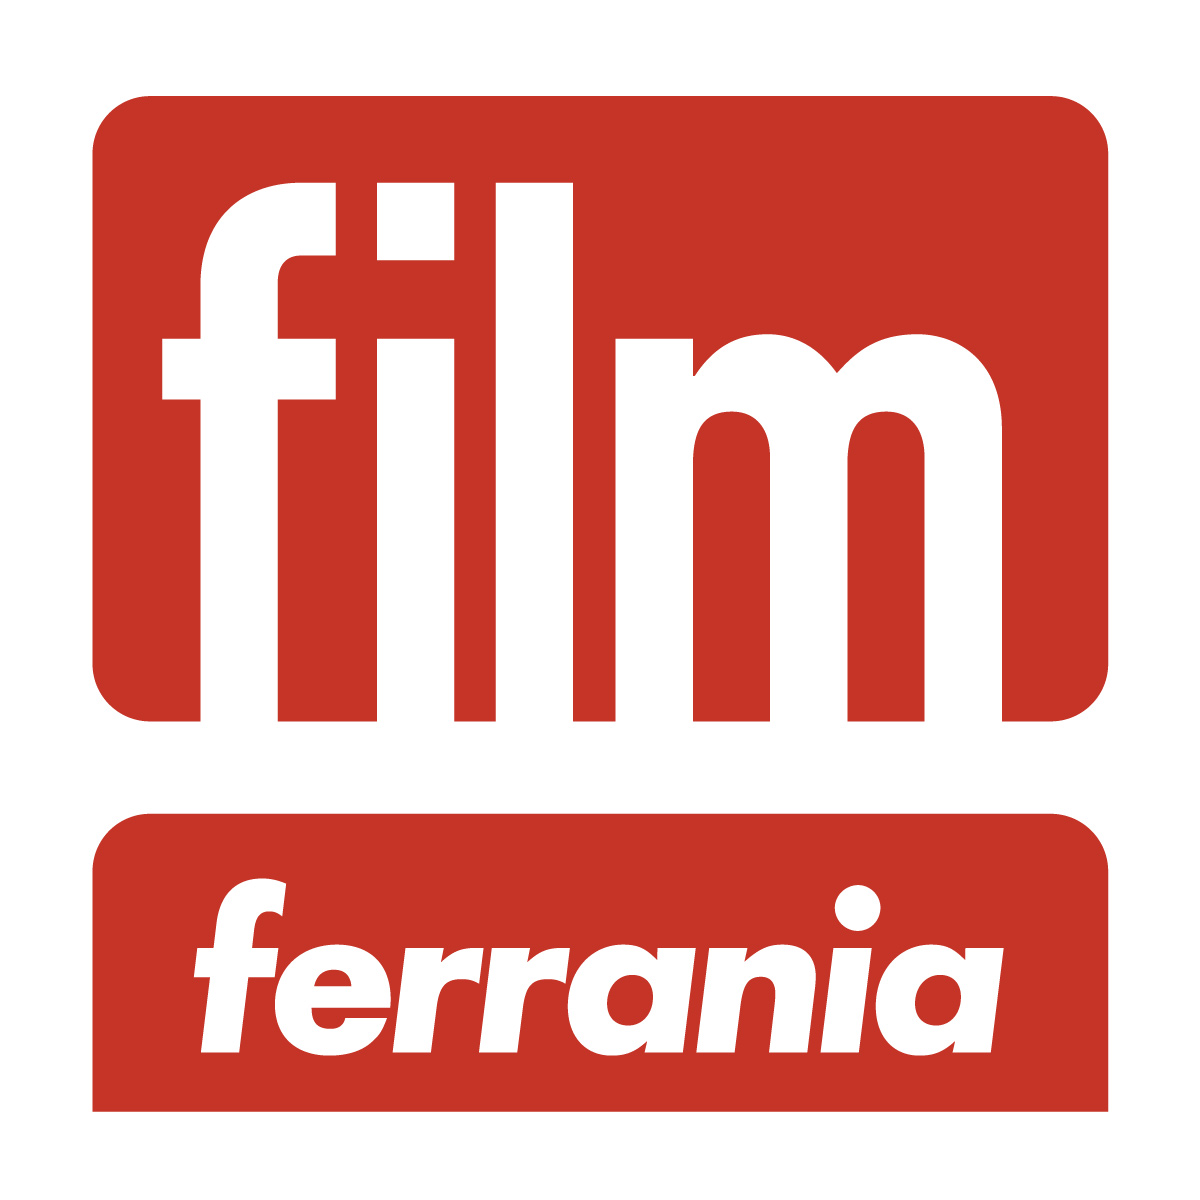 FILM Ferrania logo package    JPG, PNG, EPS in three colors